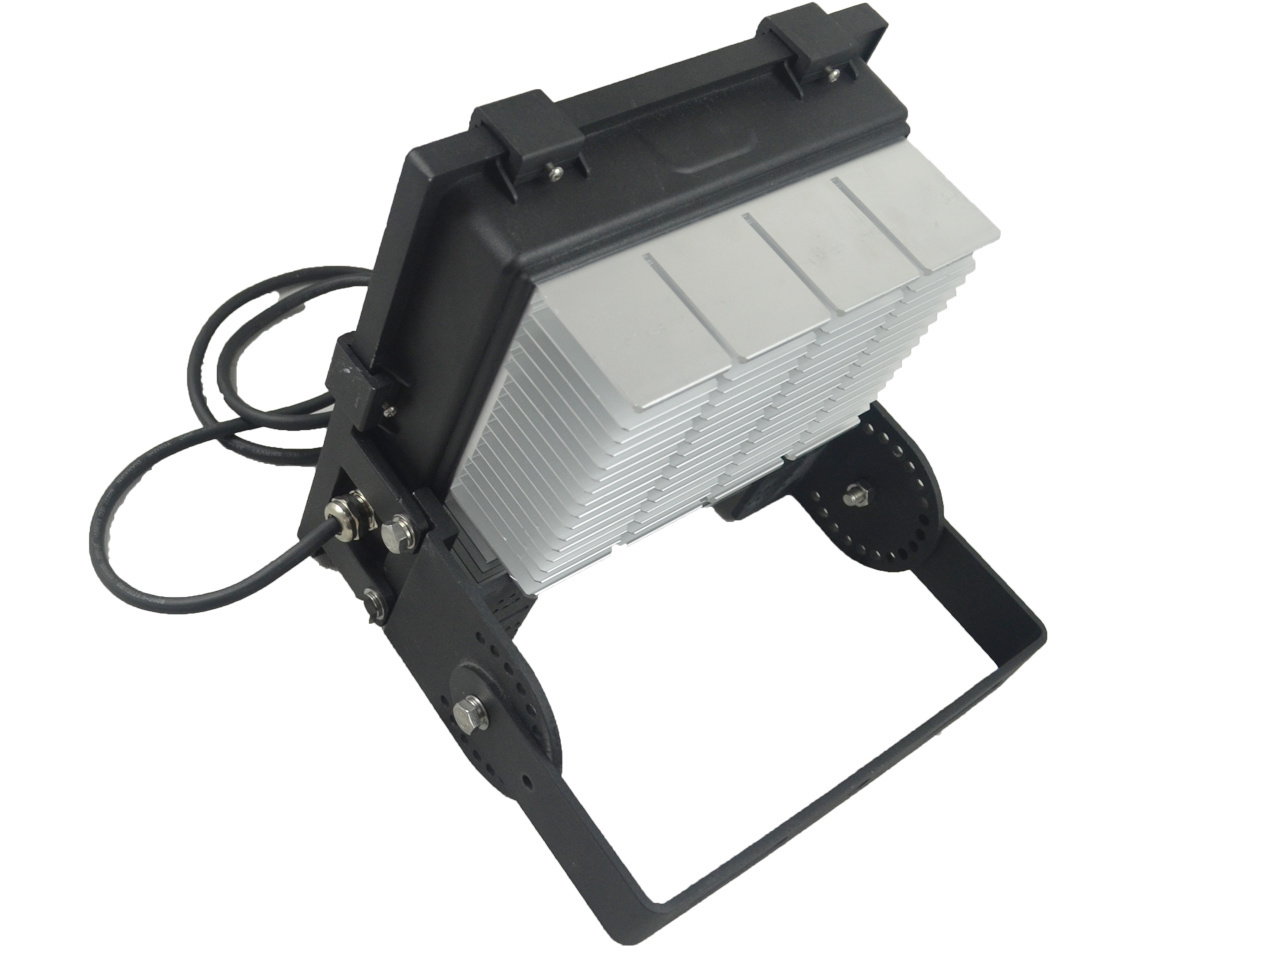 LED COB 100W Spotlights for Outdoor Garden or Building Light